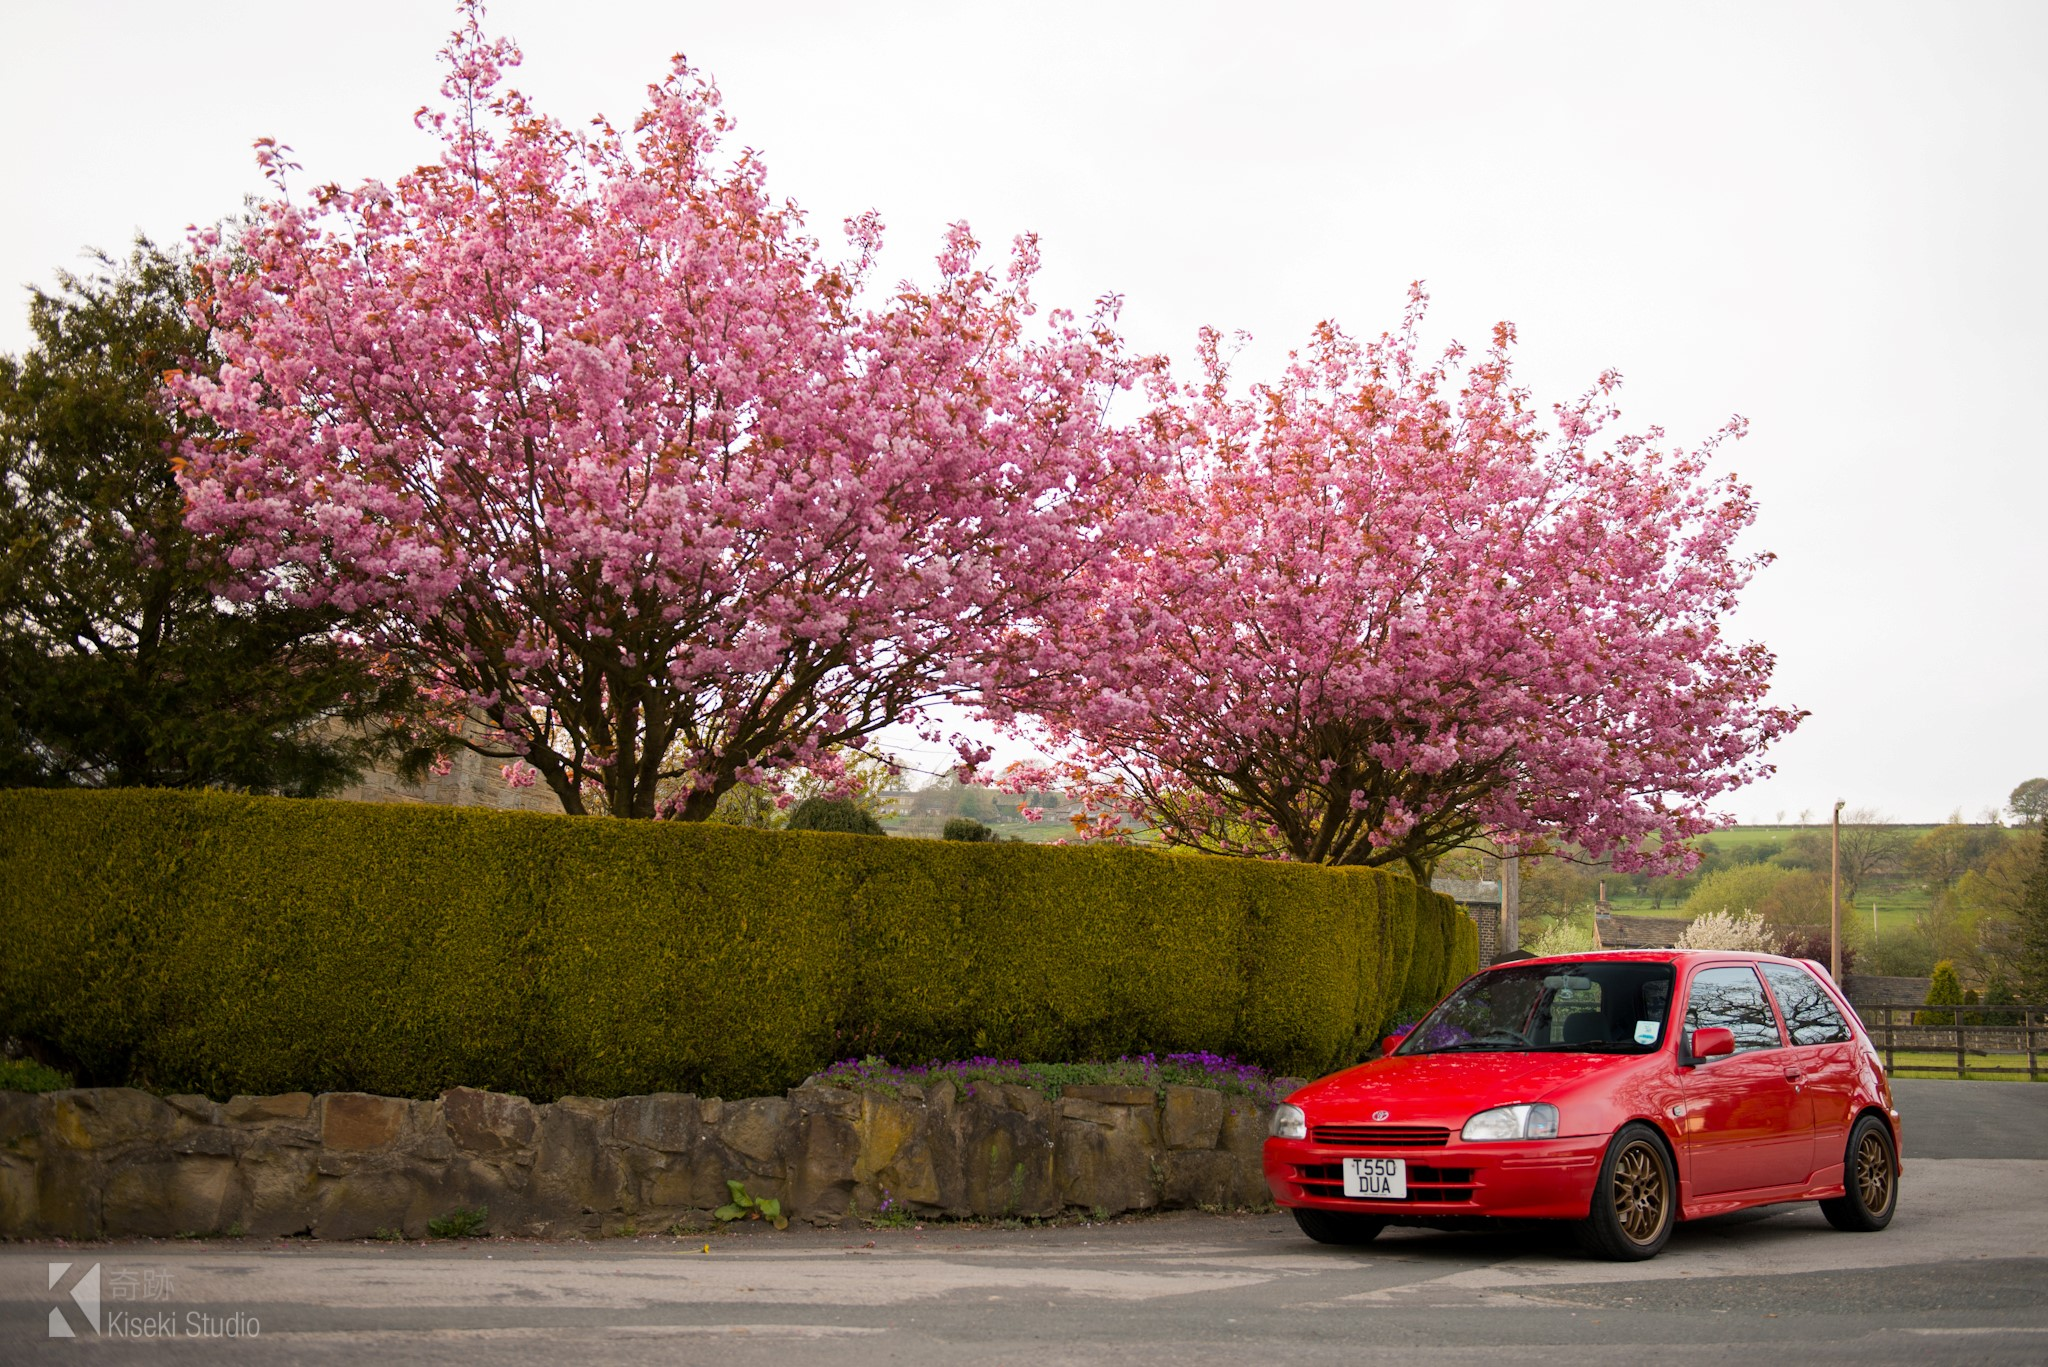 Toyota Starlet EP91 next to blossoms